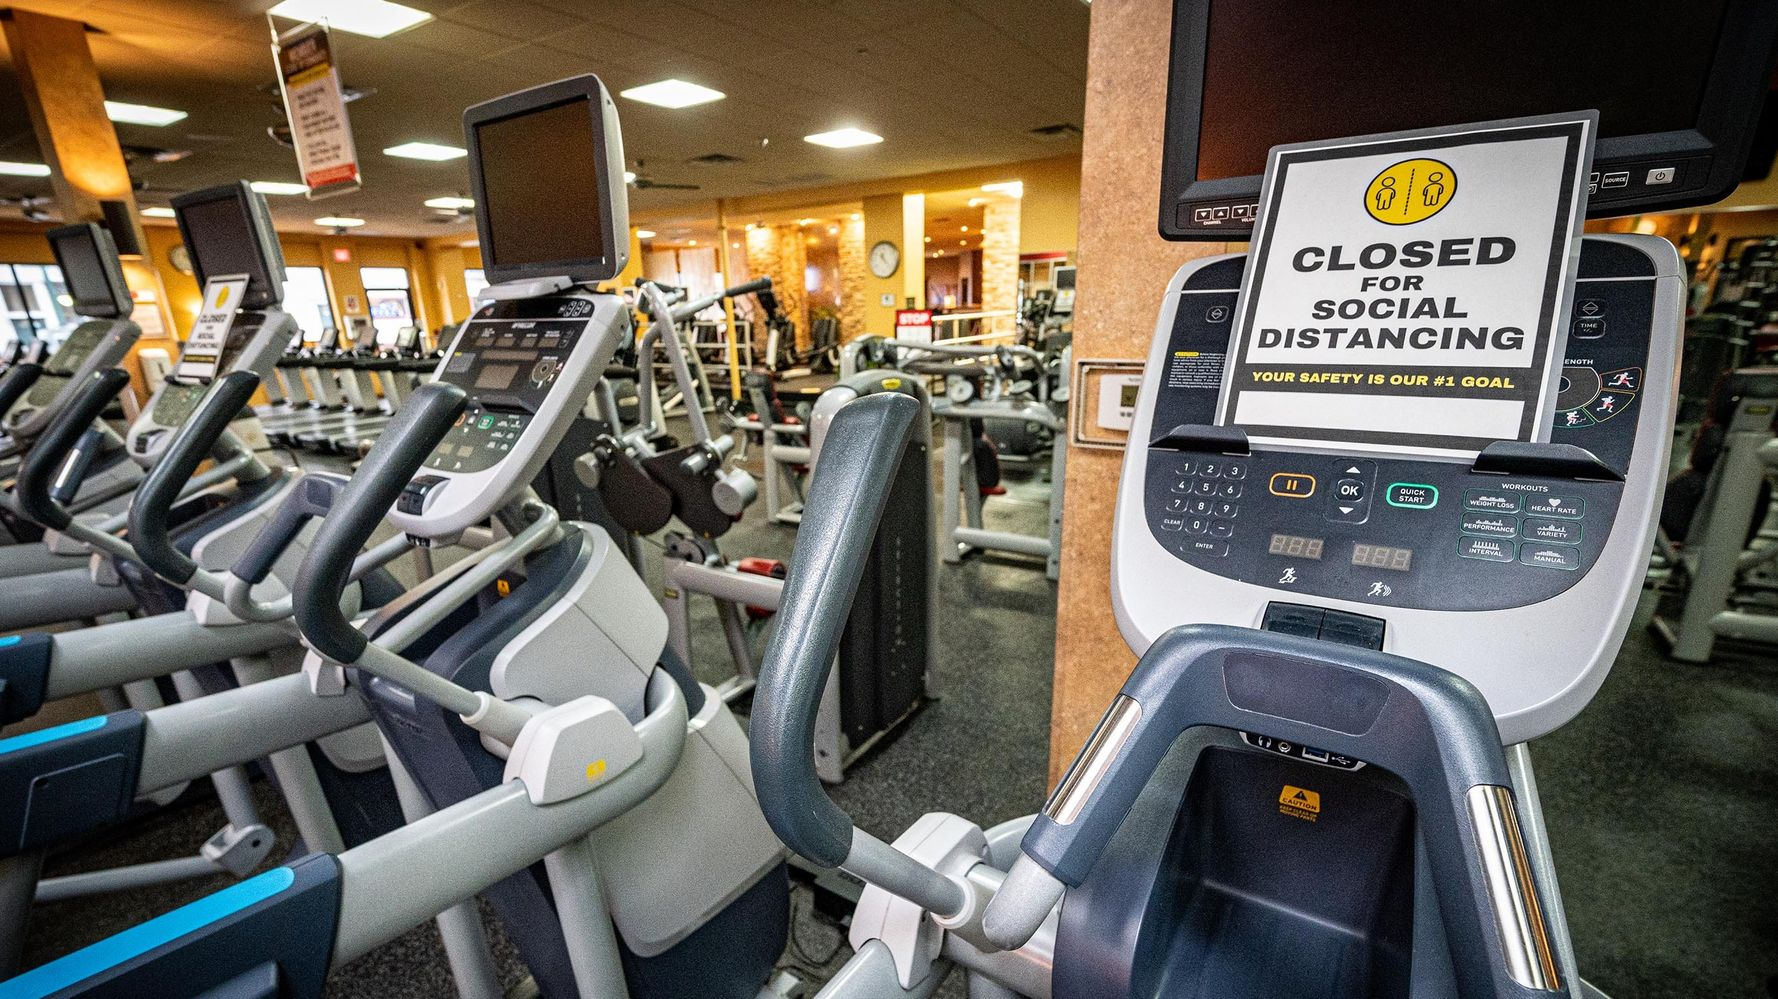 CDC Urges Stricter Gym Precautions After COVID-19 Outbreaks Linked To Facilities